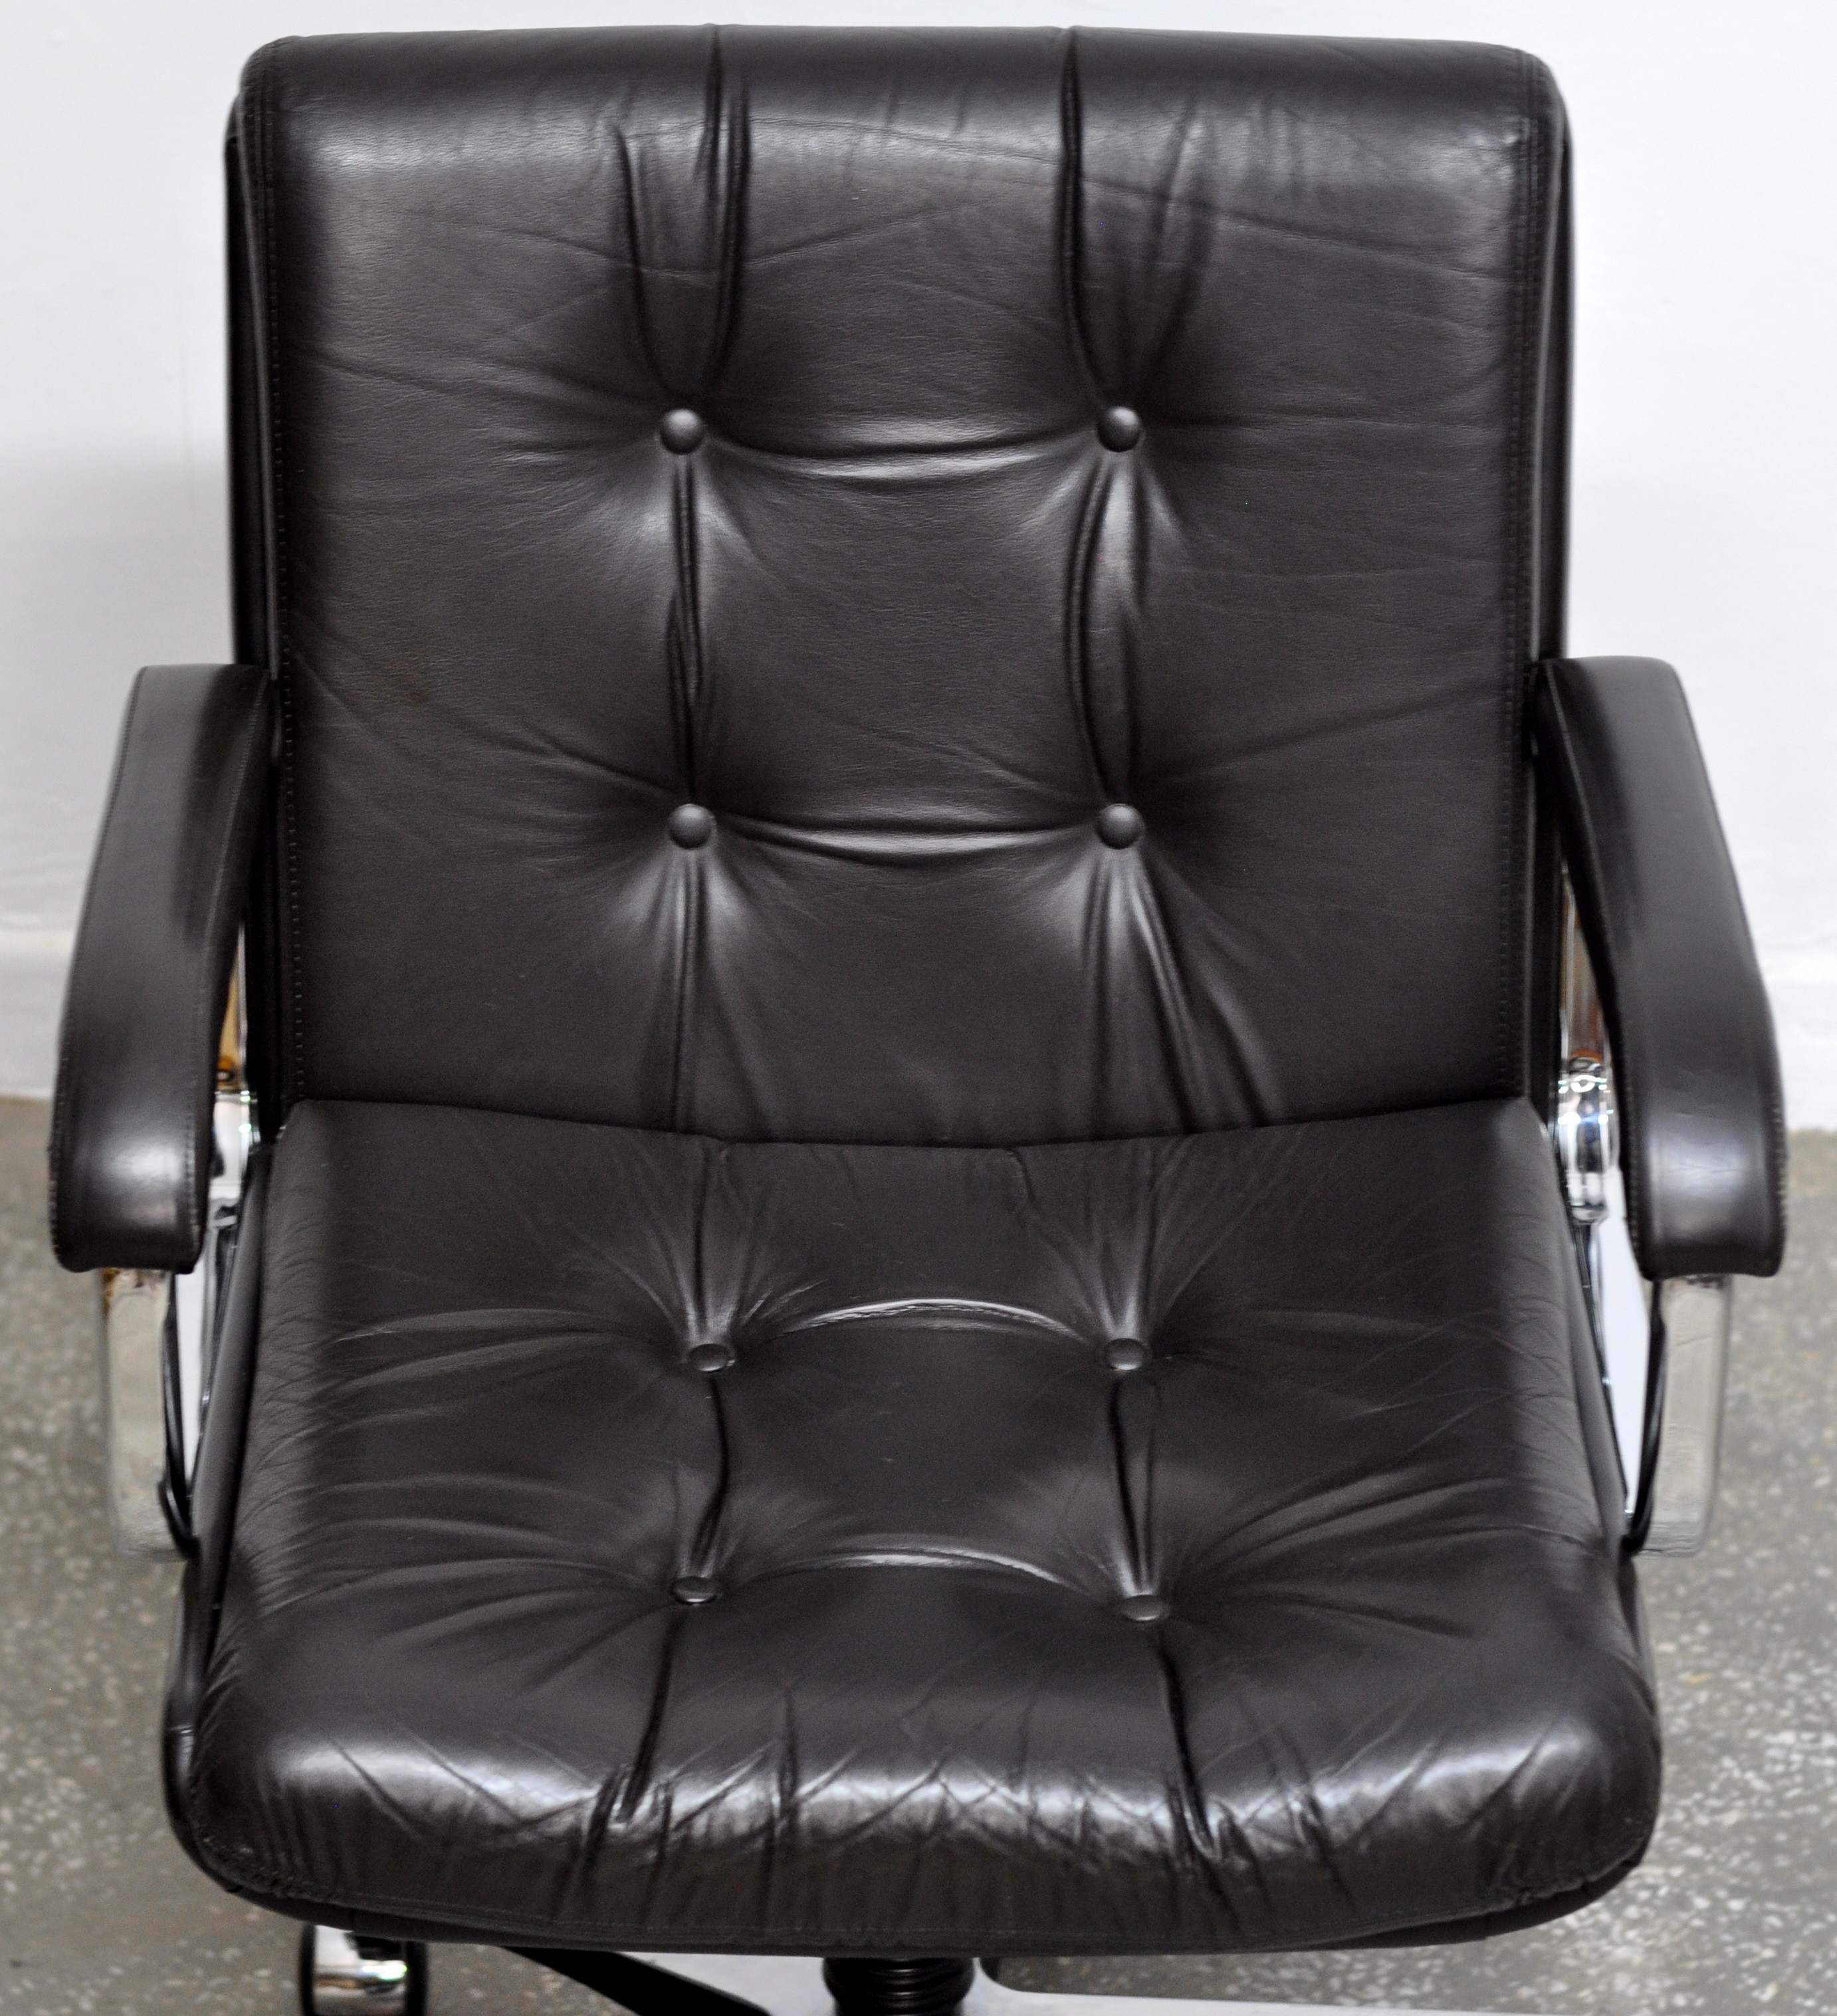 Norwegian vintage office chair Fauteuil Cuir Vintage Norwegian Office Chair From Ring Mekanikk 1960s Previous Next Epoch Furnishings Vintage Norwegian Office Chair From Ring Mekanikk 1960s Design